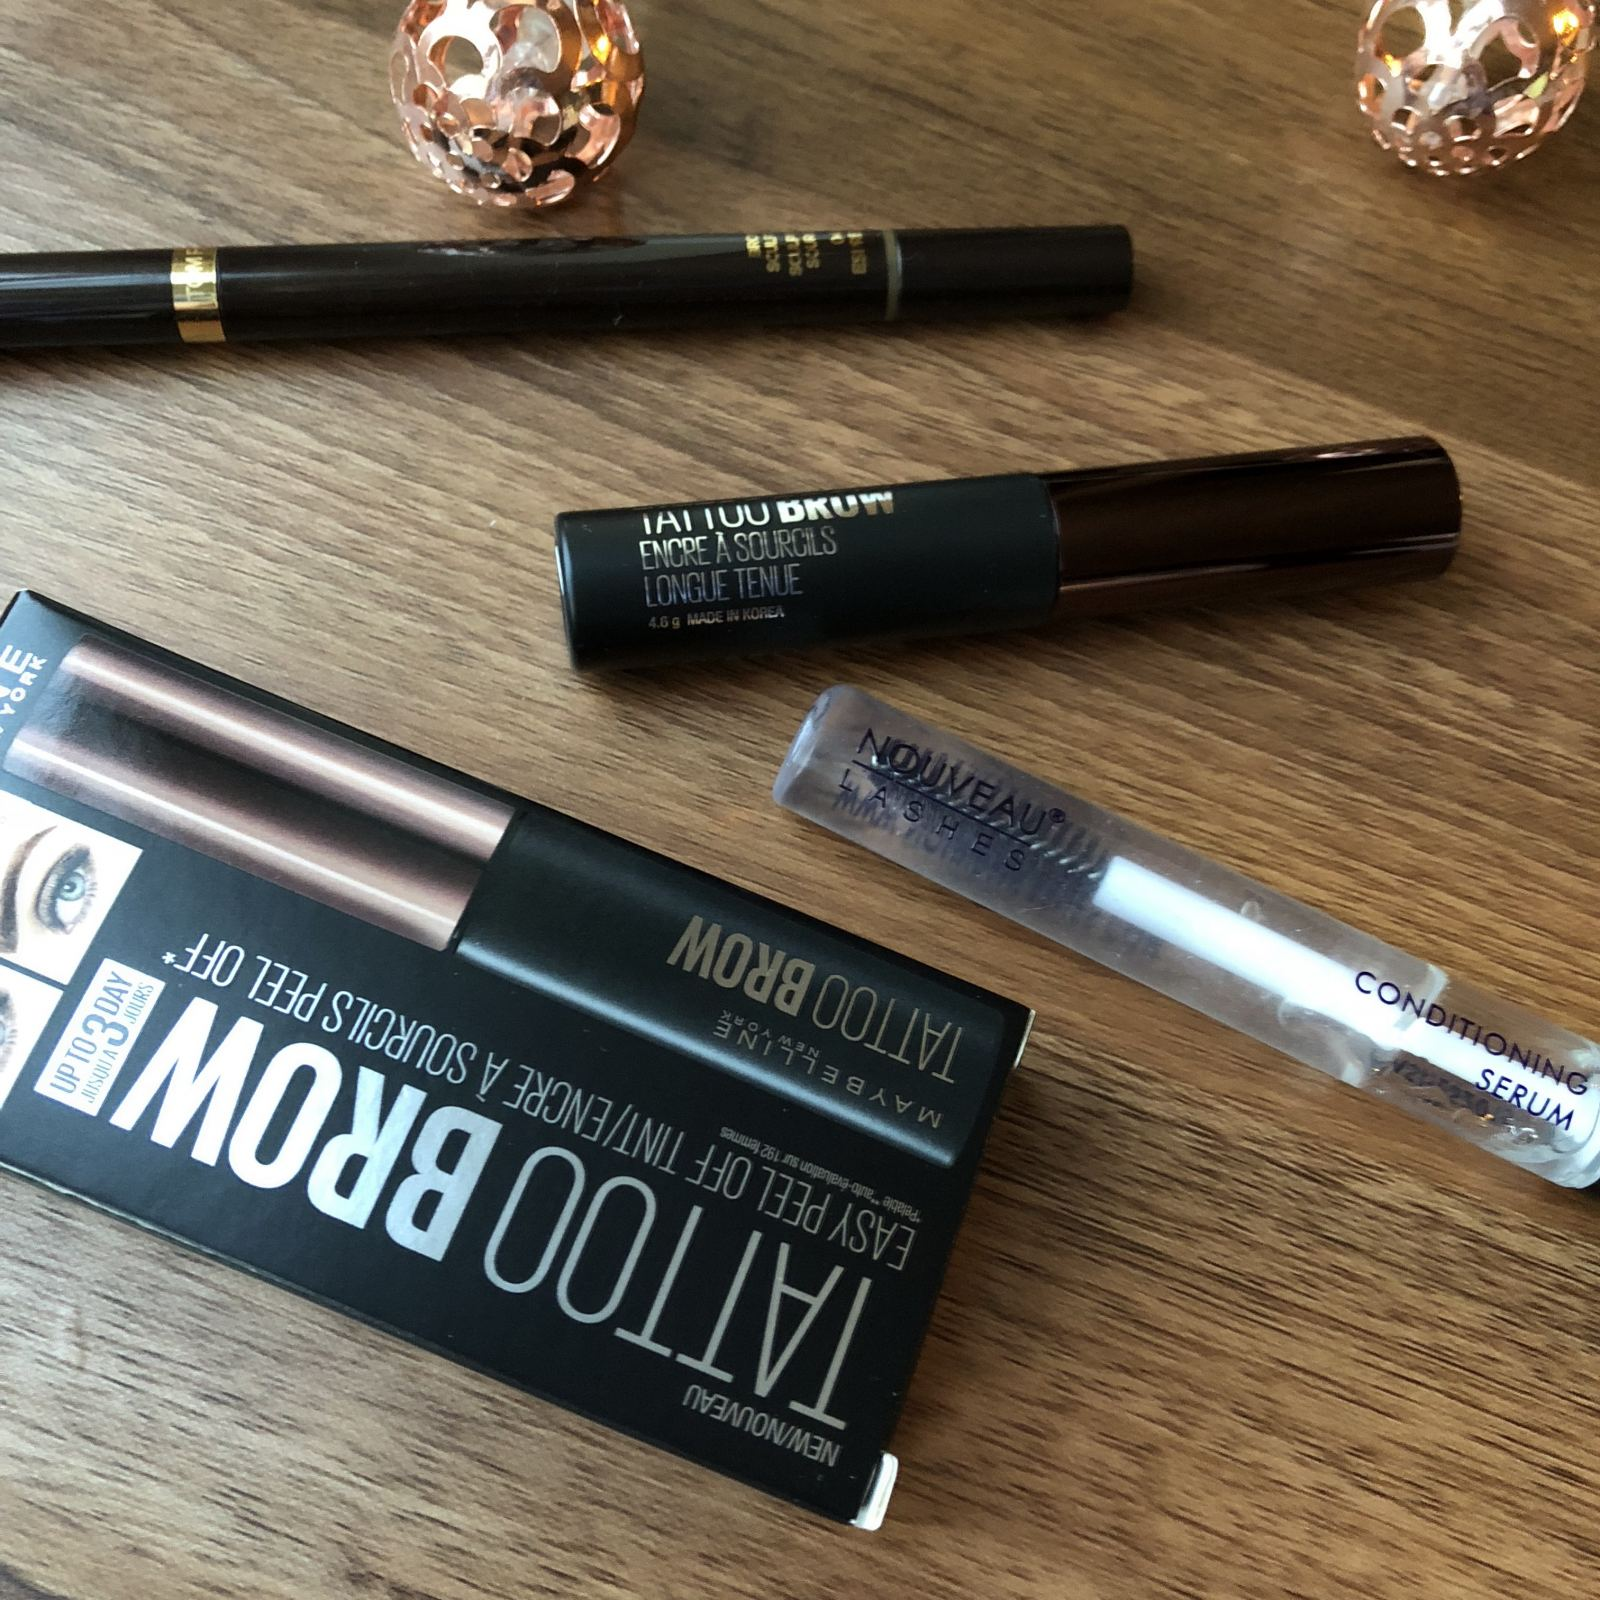 Flatlay product shot of Tom Ford Brow Sculptor in Espresso, Nouveau Lash Serum and Maybelline Tattoo brow